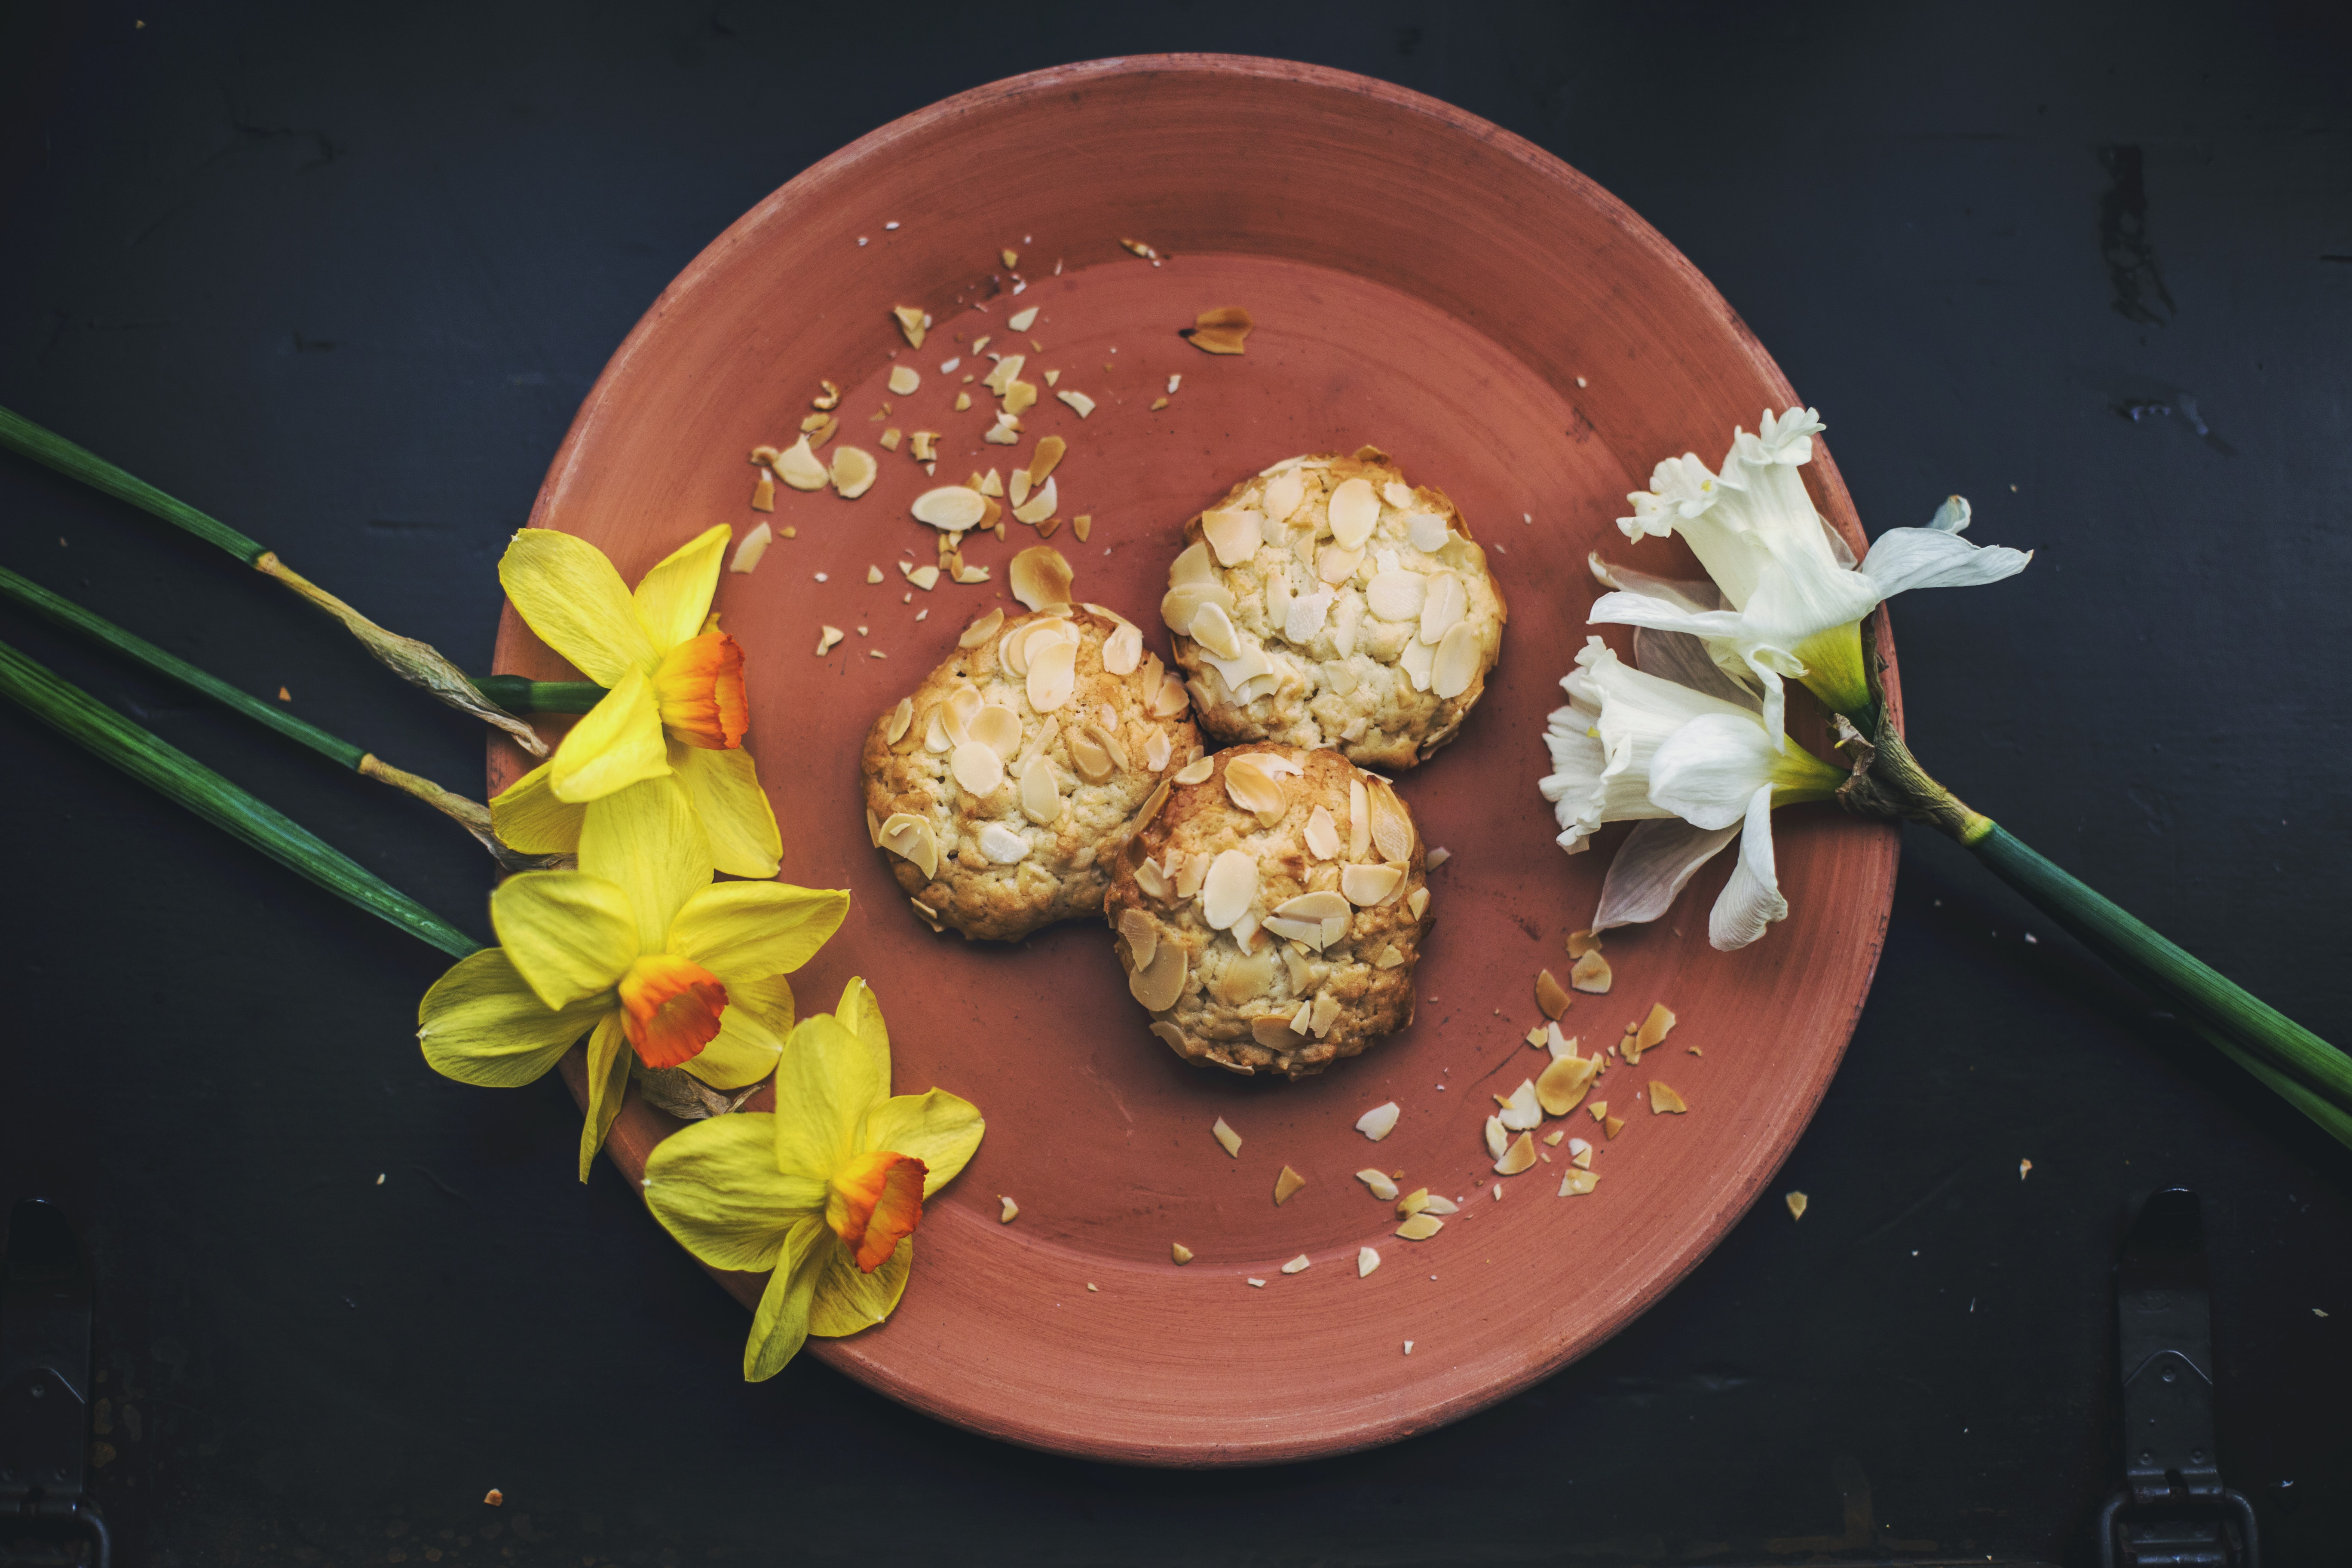 Overhead shot of fresh almond cookies plated with daffodils